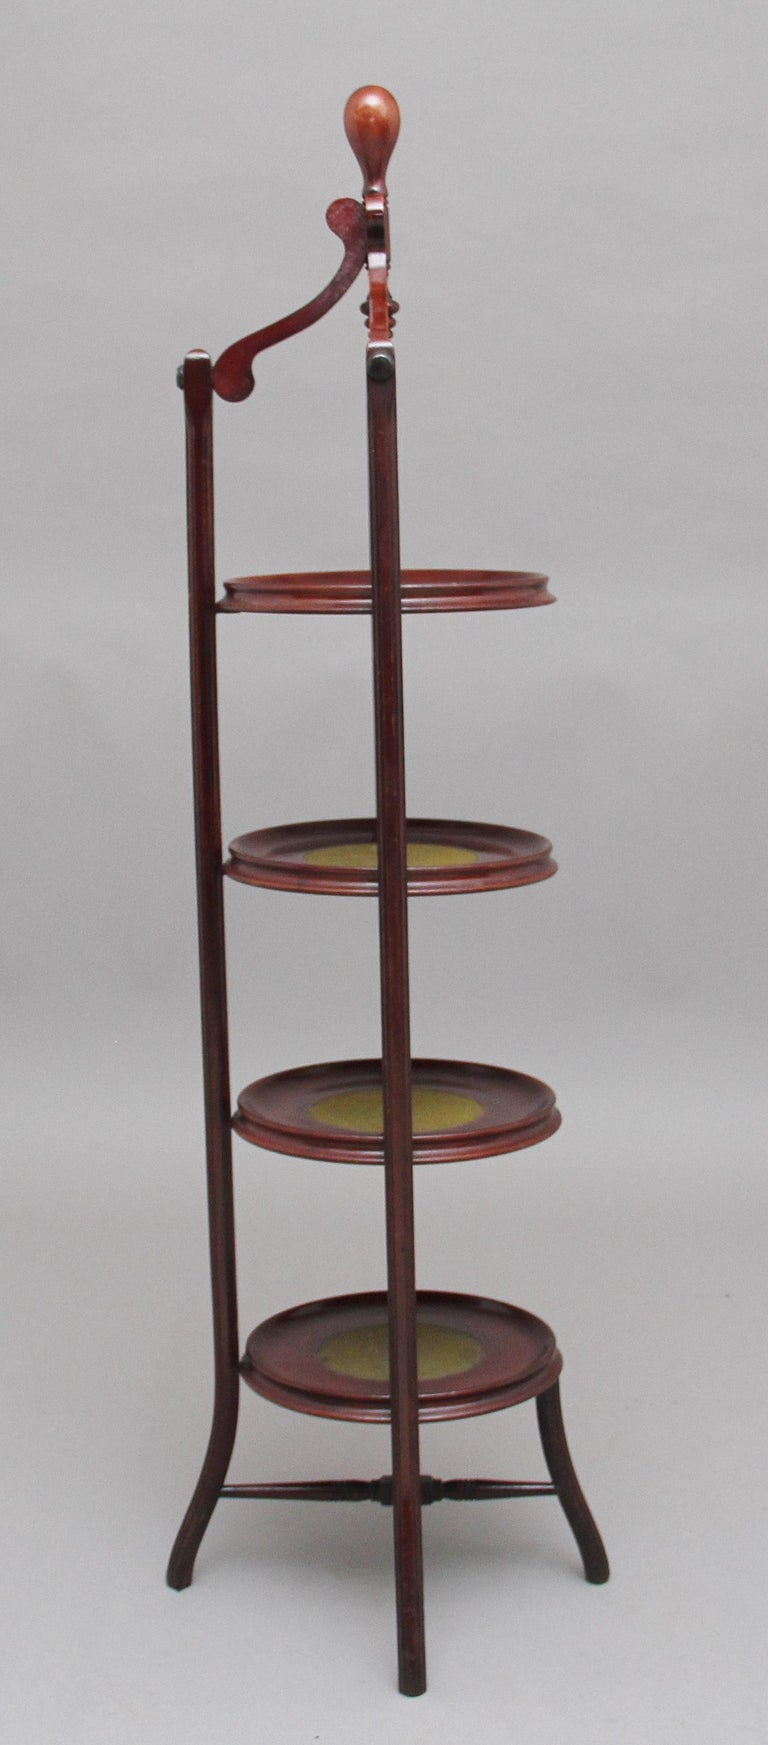 Early 20th Century Mahogany Cake Stand In Good Condition For Sale In Martlesham, GB